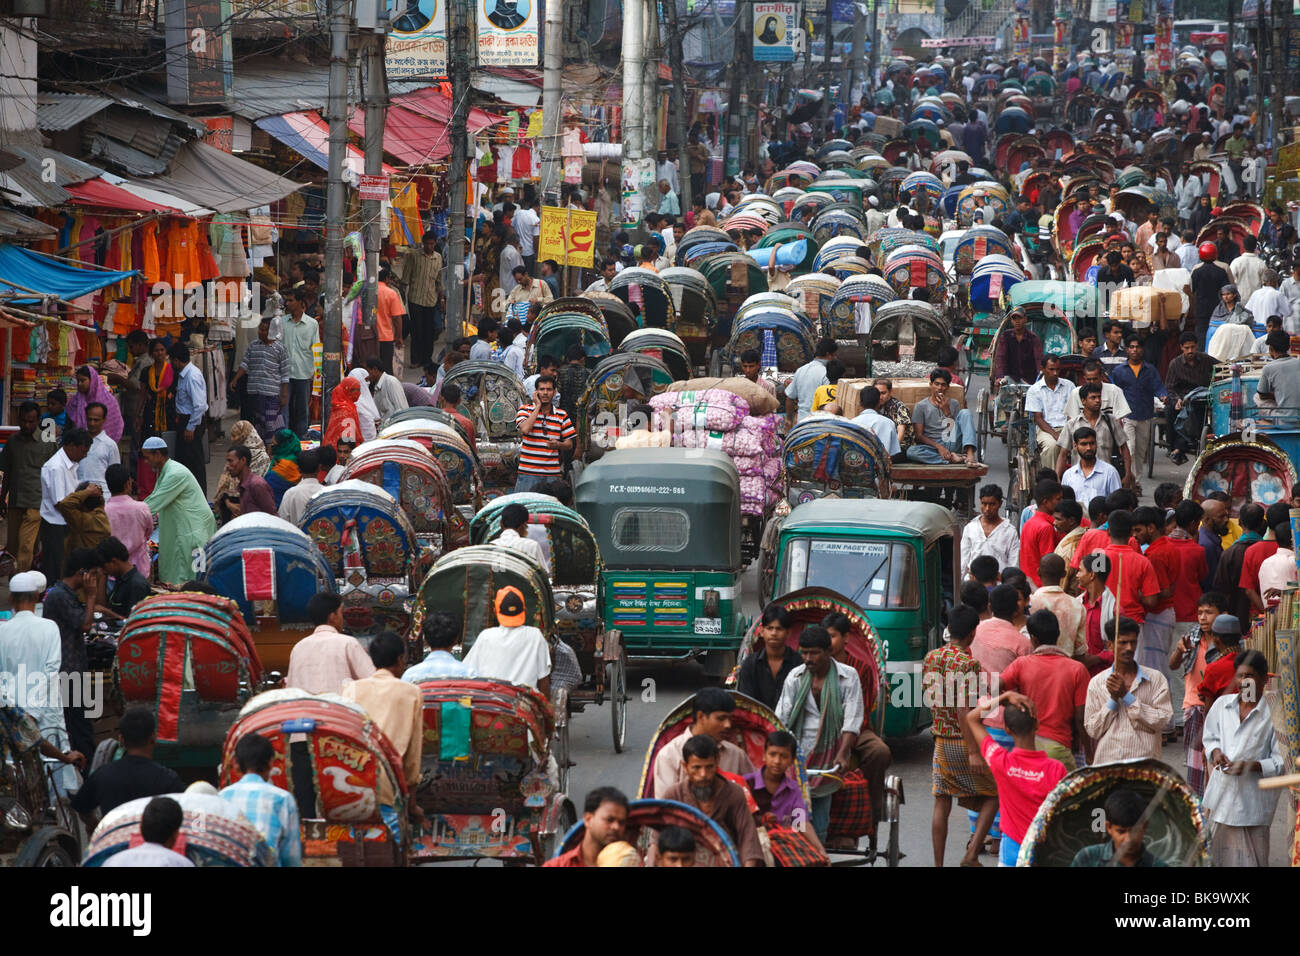 People and rickshaw traffic in the old part of Dhaka, Bangladesh. - Stock Image